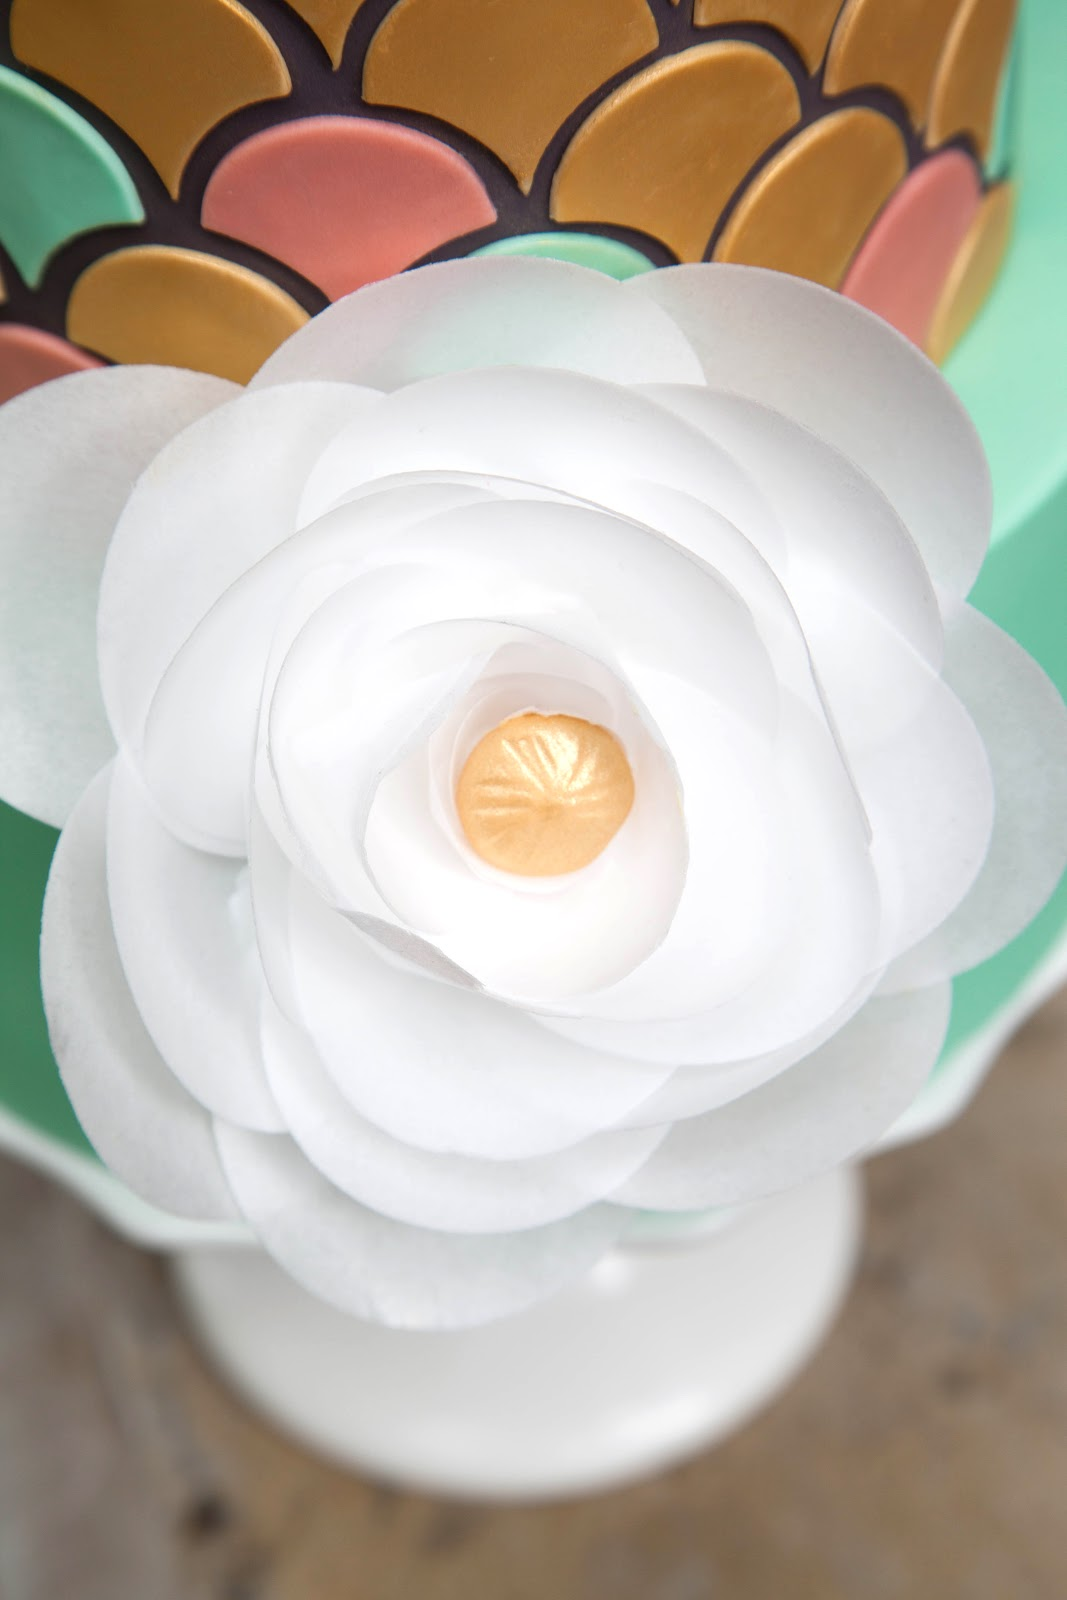 Cake Designs On Paper : Wafer Paper Flowers - Tutorial Video - Jessica Harris Cake ...